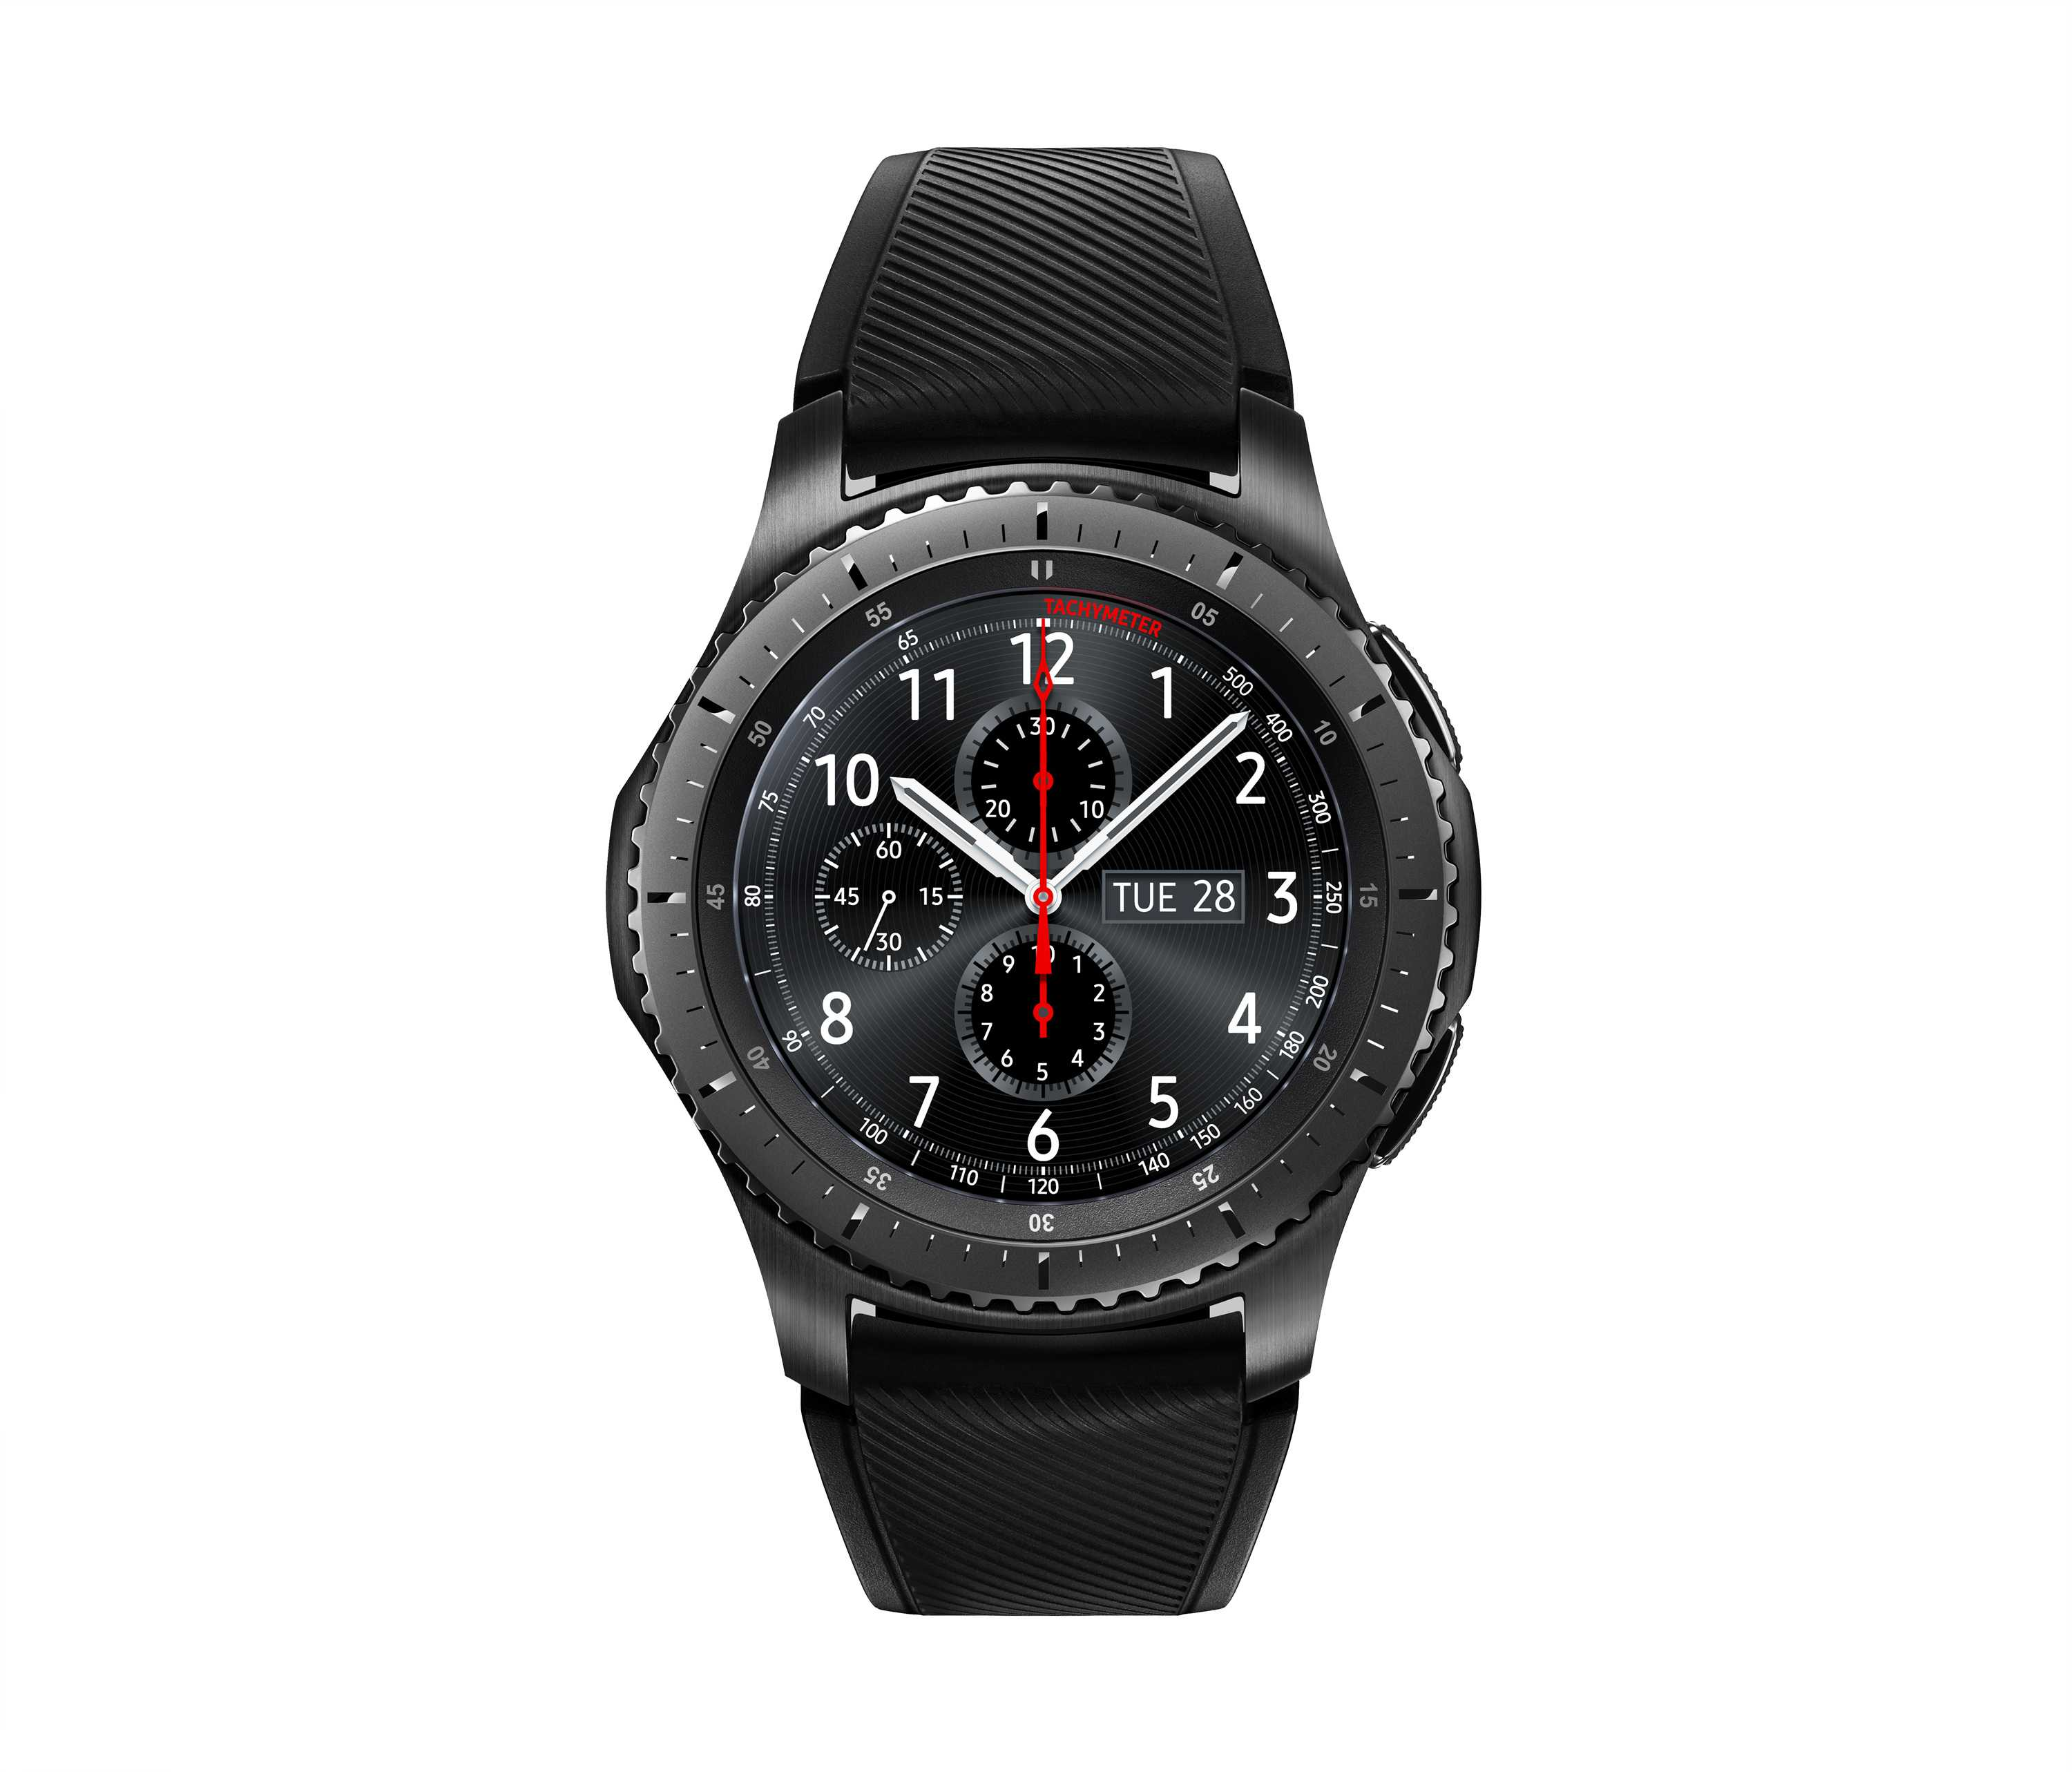 Samsung Gear S3 Frontier Pre-orders at AT&T Starts Today